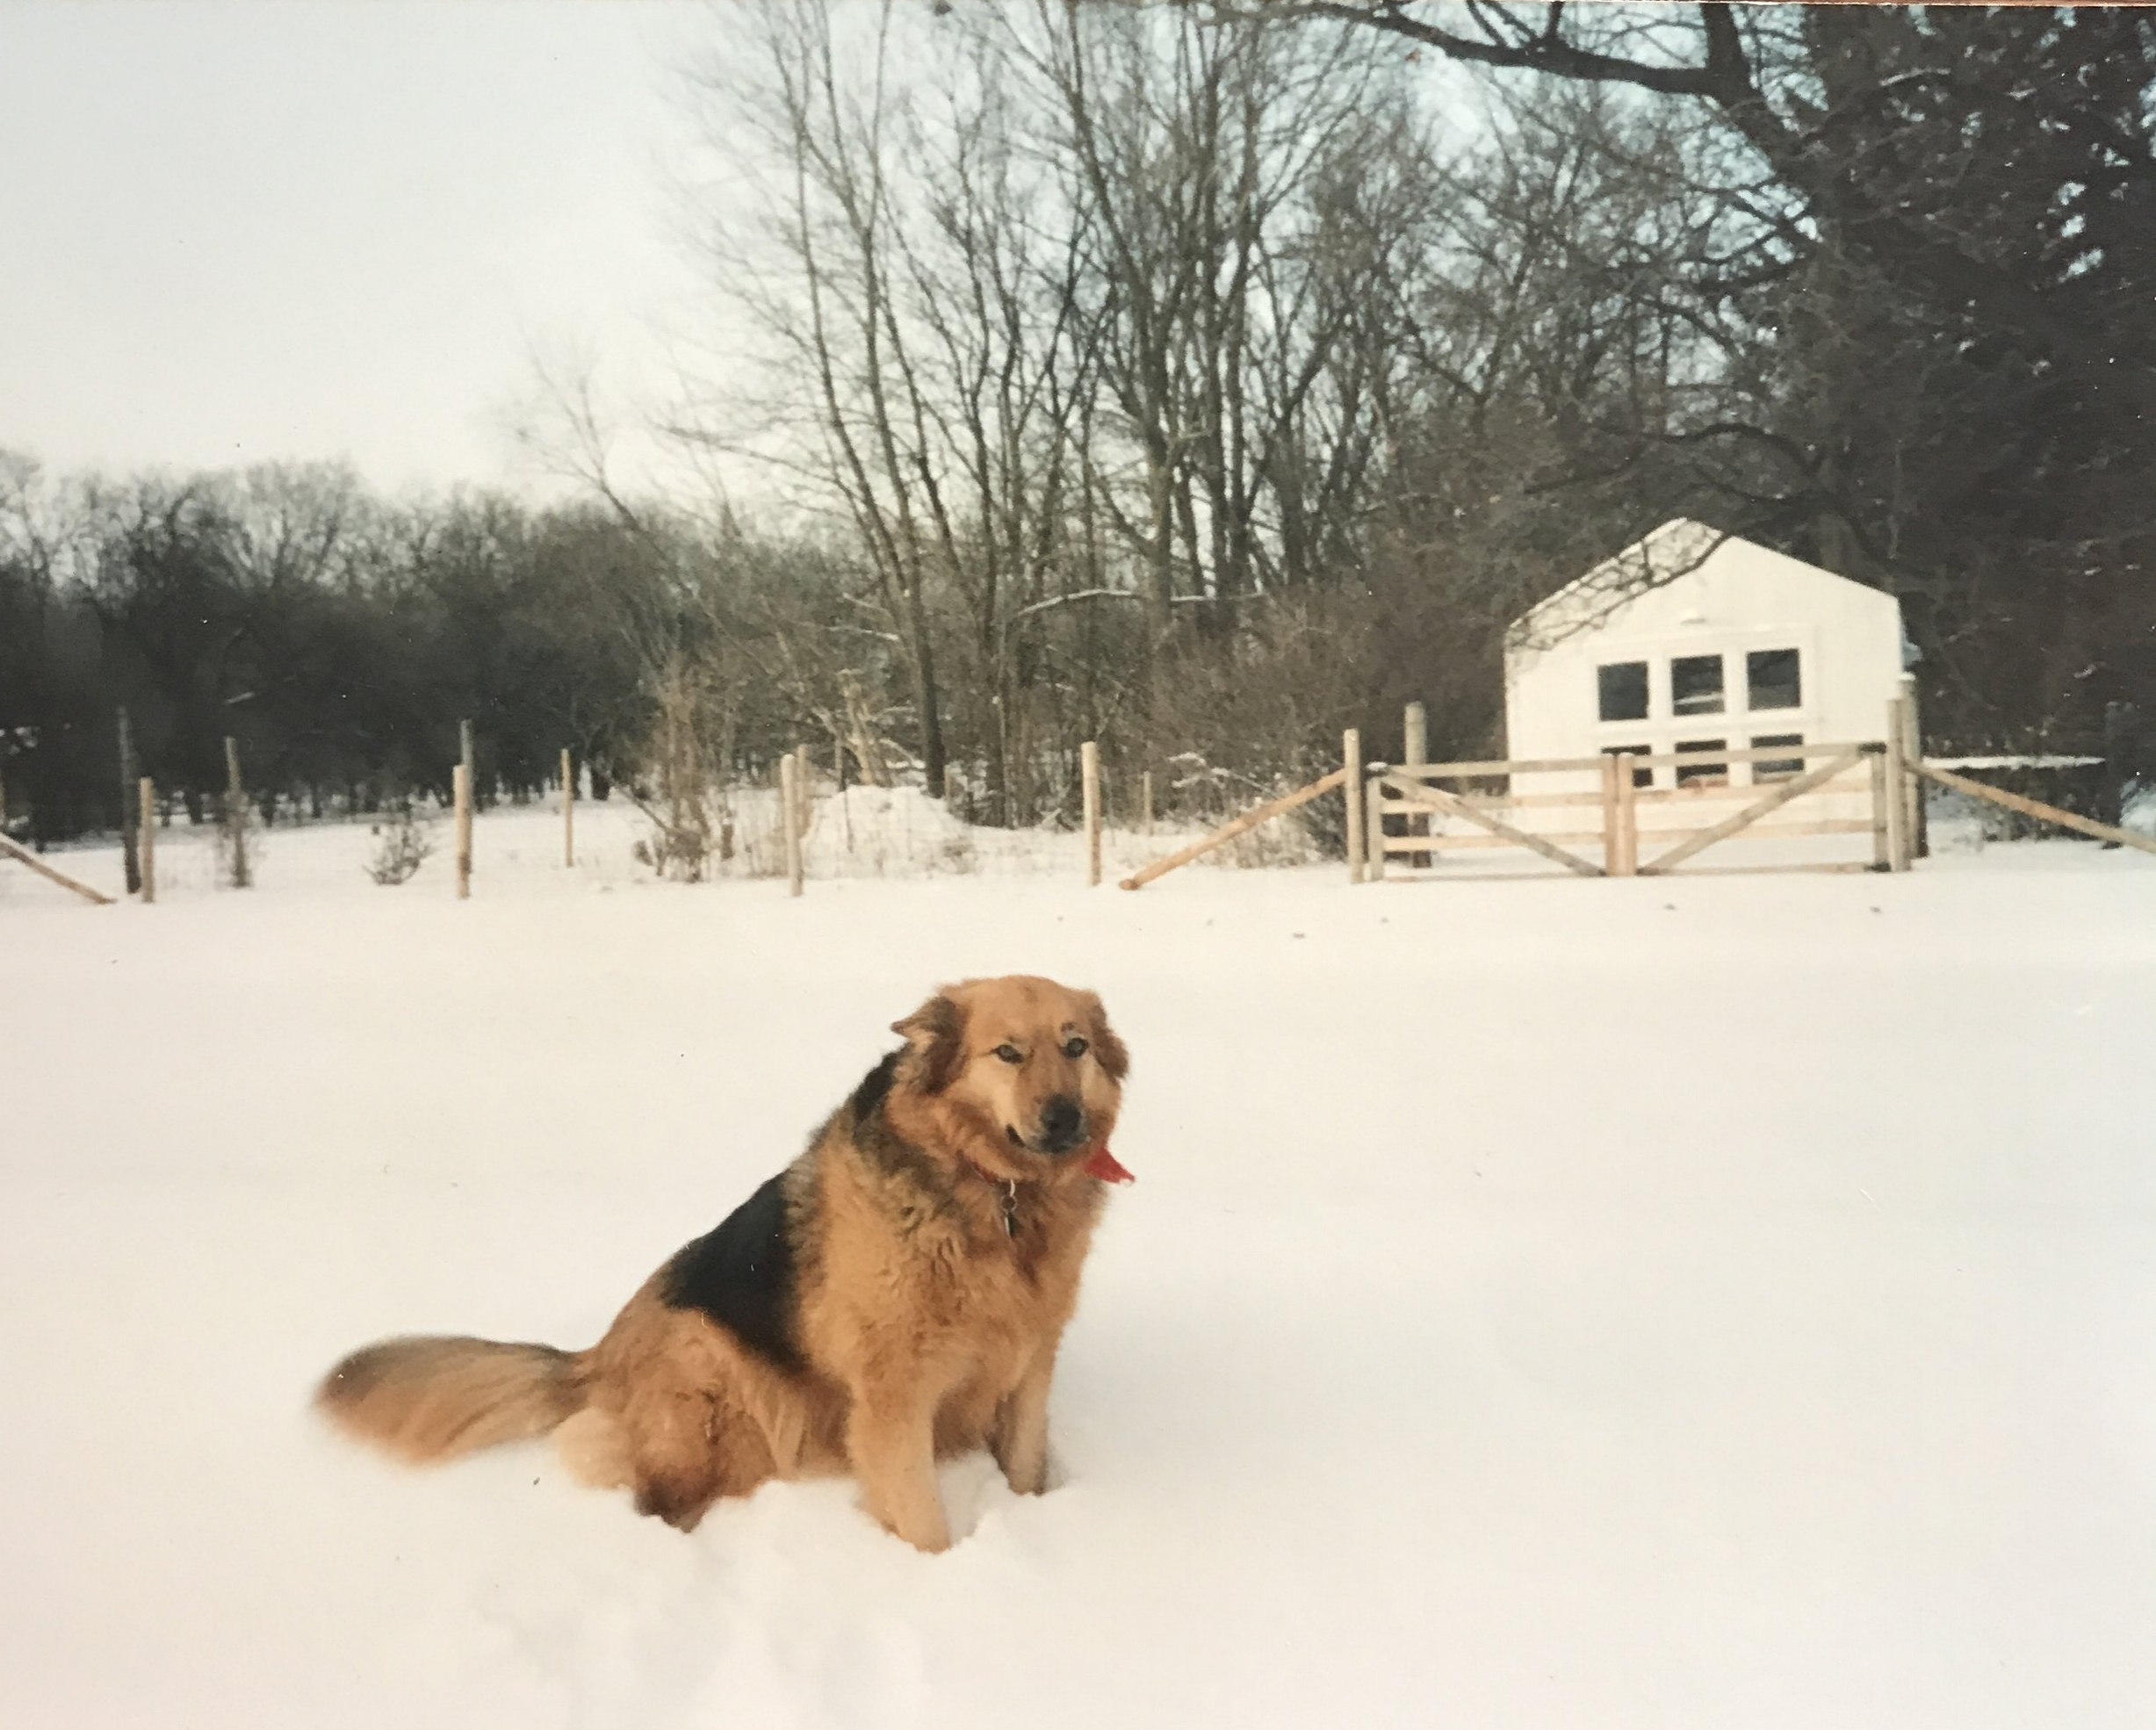 Lady on my grandparents farm. She was a really pretty dog. It was freezing cold that day.